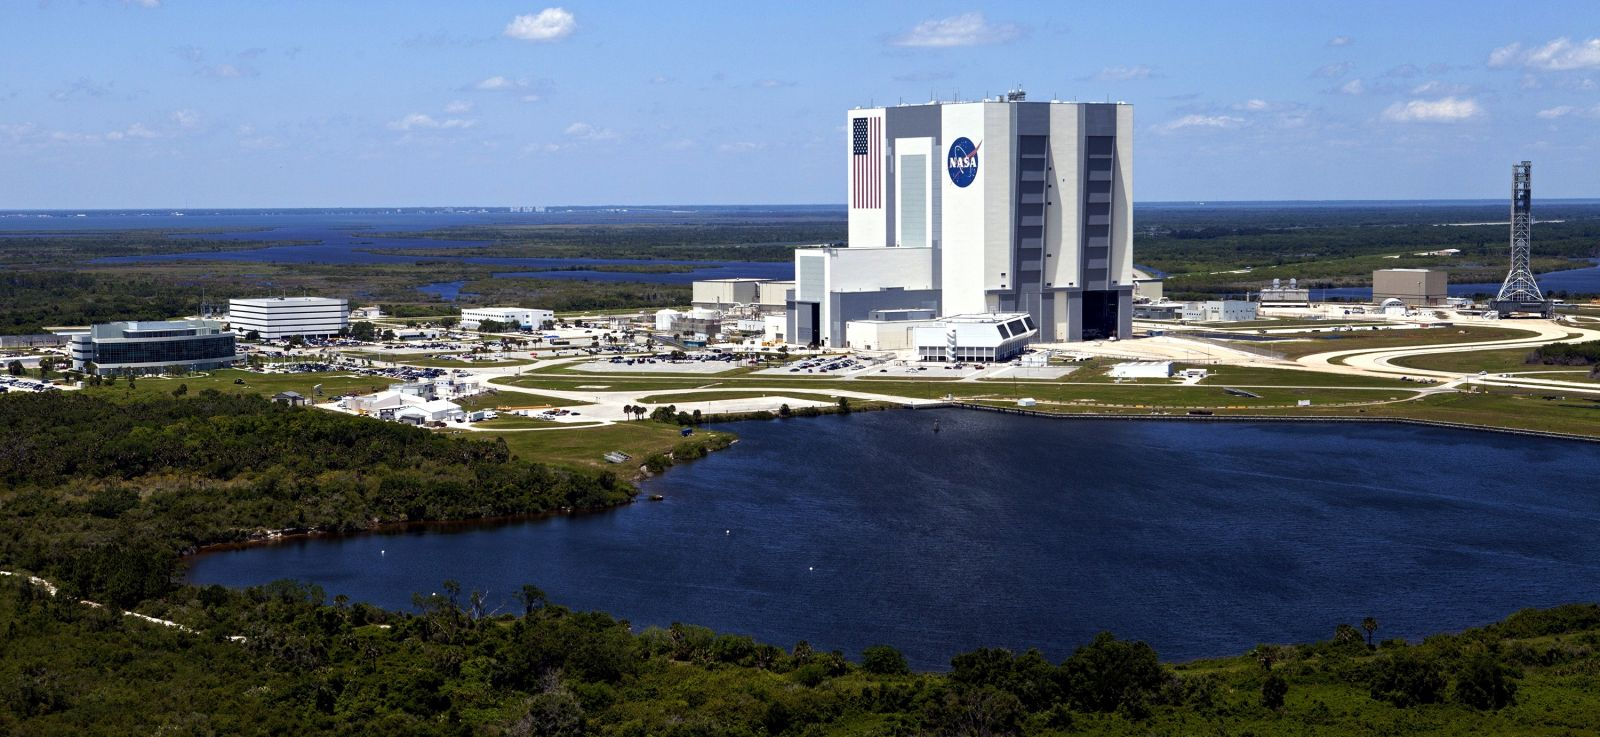 "Much publicity has been given to efforts to make Kennedy Space Center a ""Multi-User Spaceport"" - but what does that mean exactly and how do commercial companies stand to benefit from this new policy? Photo Credit: NASA"